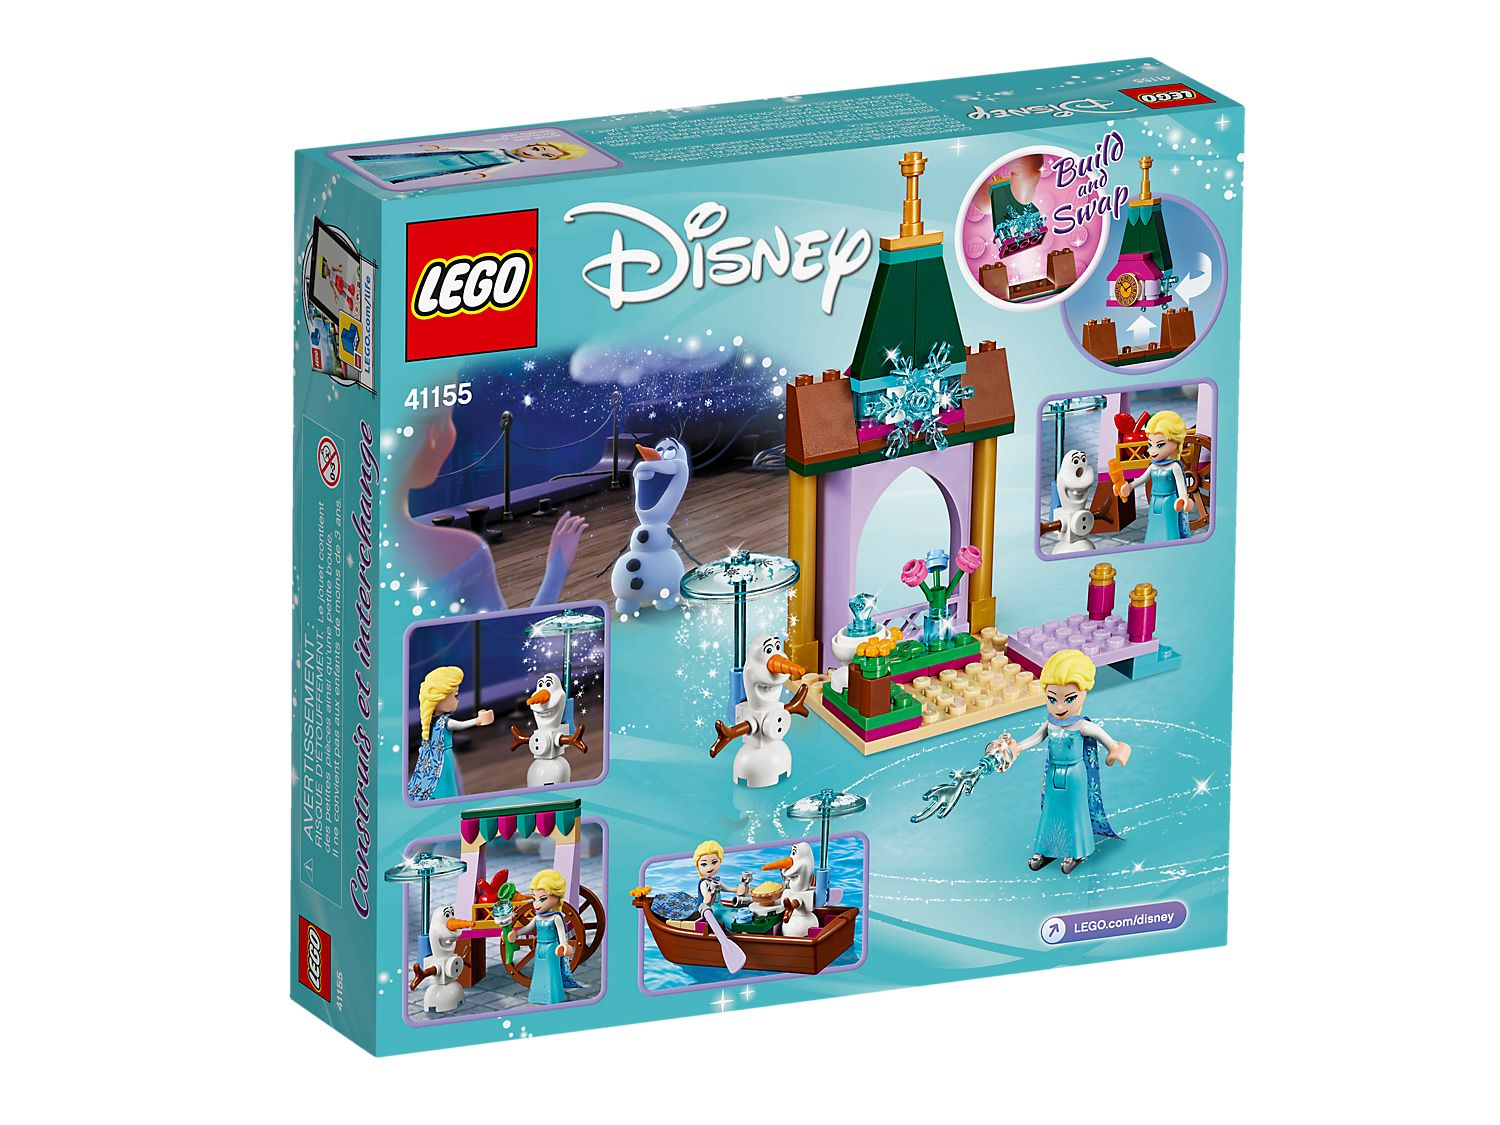 . 41155 l Disney Frozen Elsa's Market Adventure Toy for Girls and B.. LEGO UK